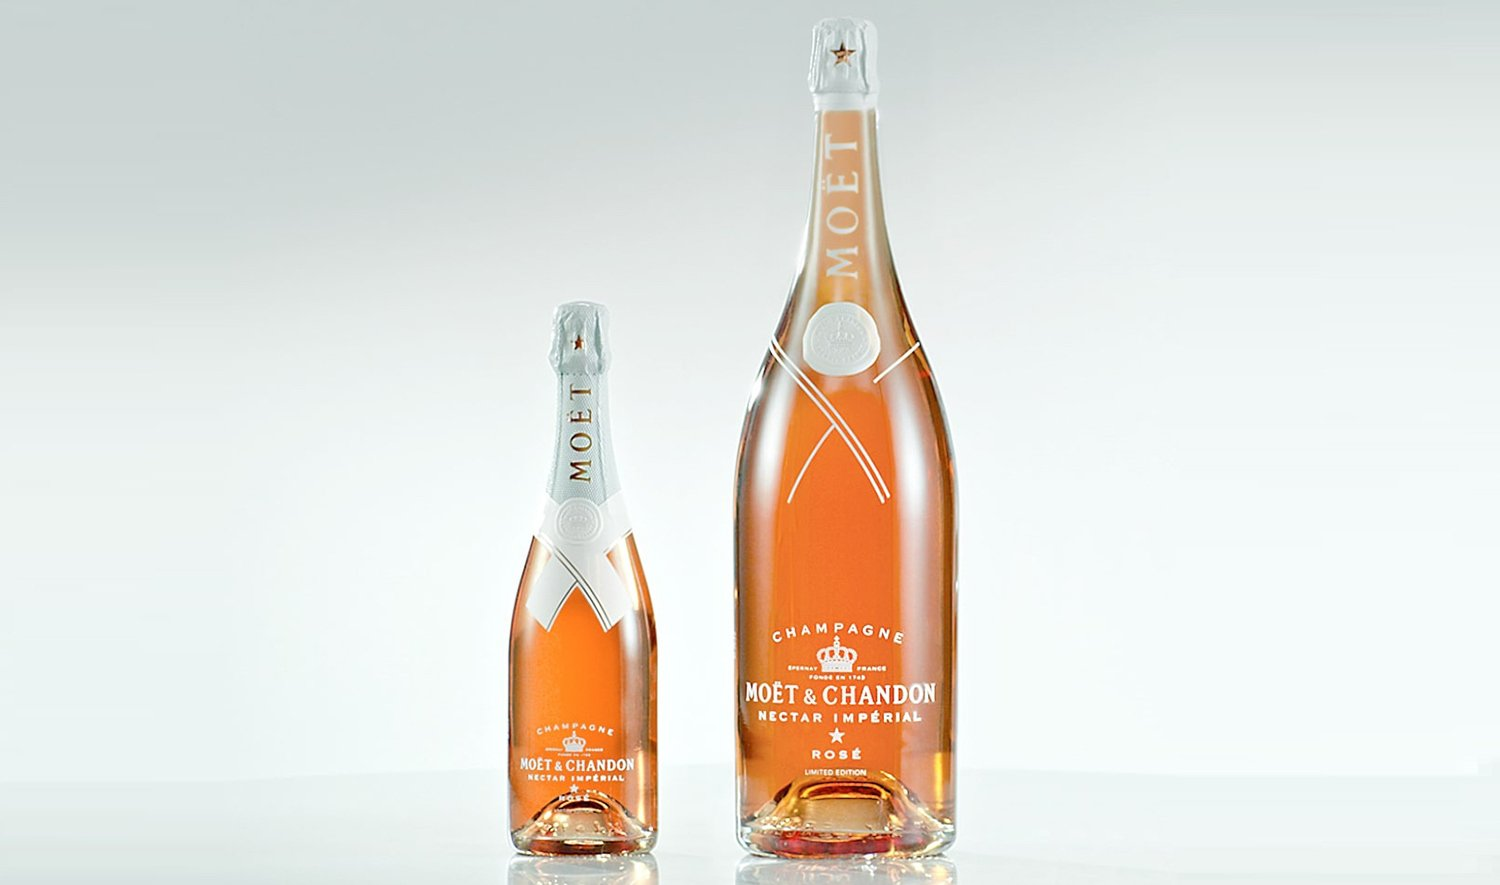 Virgil Abloh Moet Chandon Bottle further Bryson moreover Af Dff C Bc Ee Ff Df E Fa together with Safarihelicopter as well Nwo. on american made luxury cars